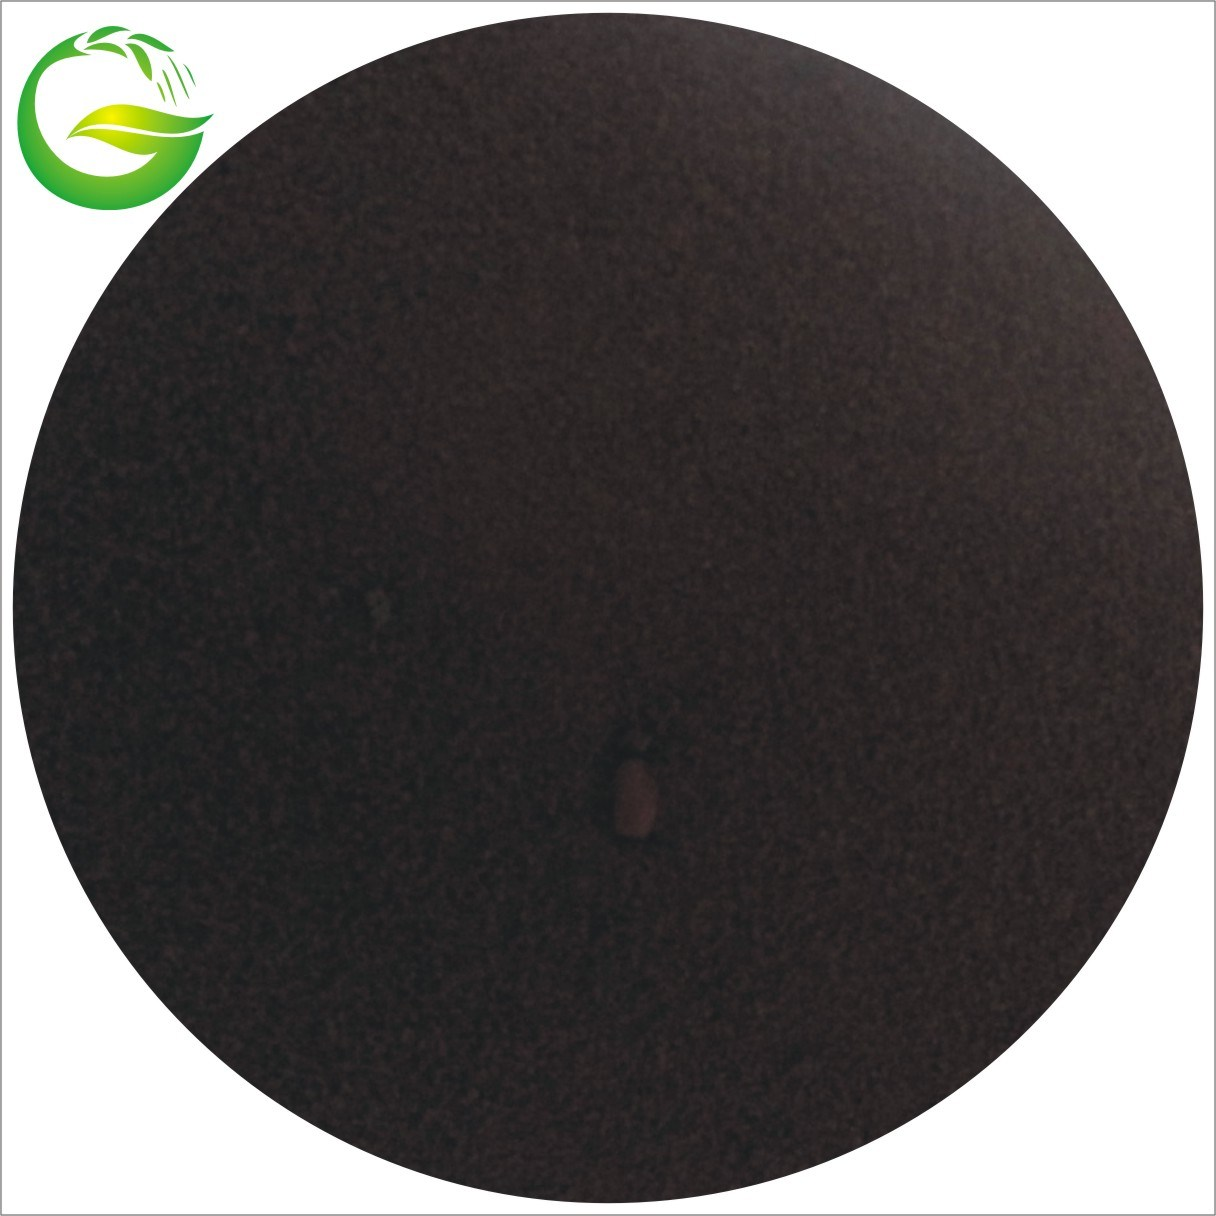 EDDHA Fe 6% O-O2.4, 3.0, 4.8 Iron Chelate Fertilizer